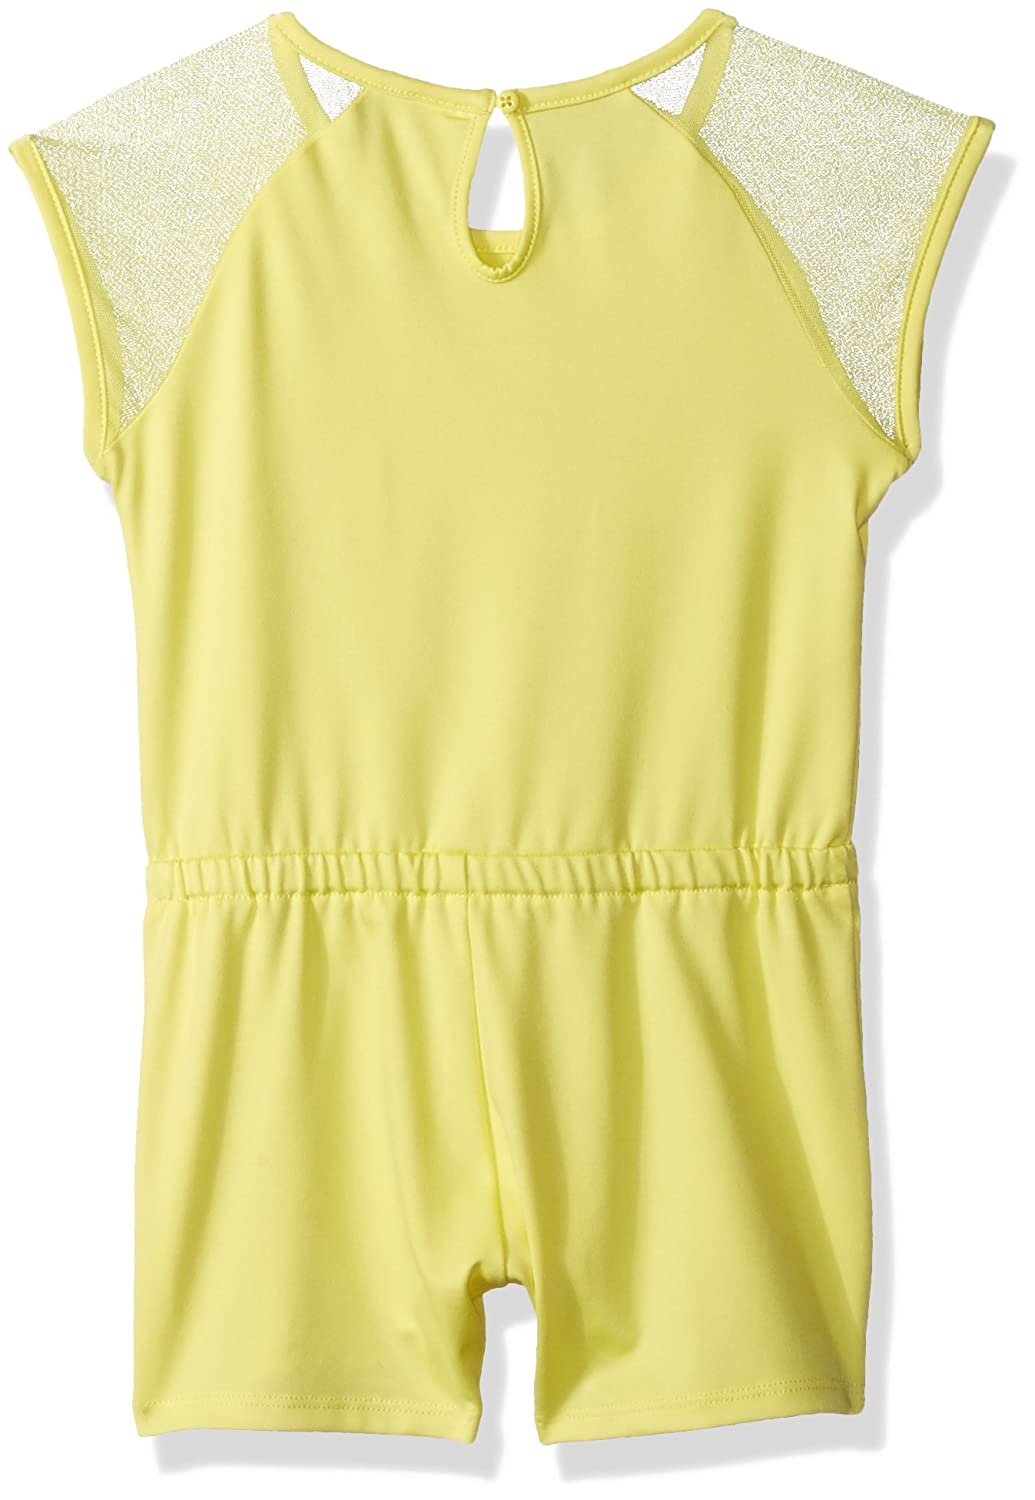 7f1dacb16b Under Armour Girls' Linear Heart Romper